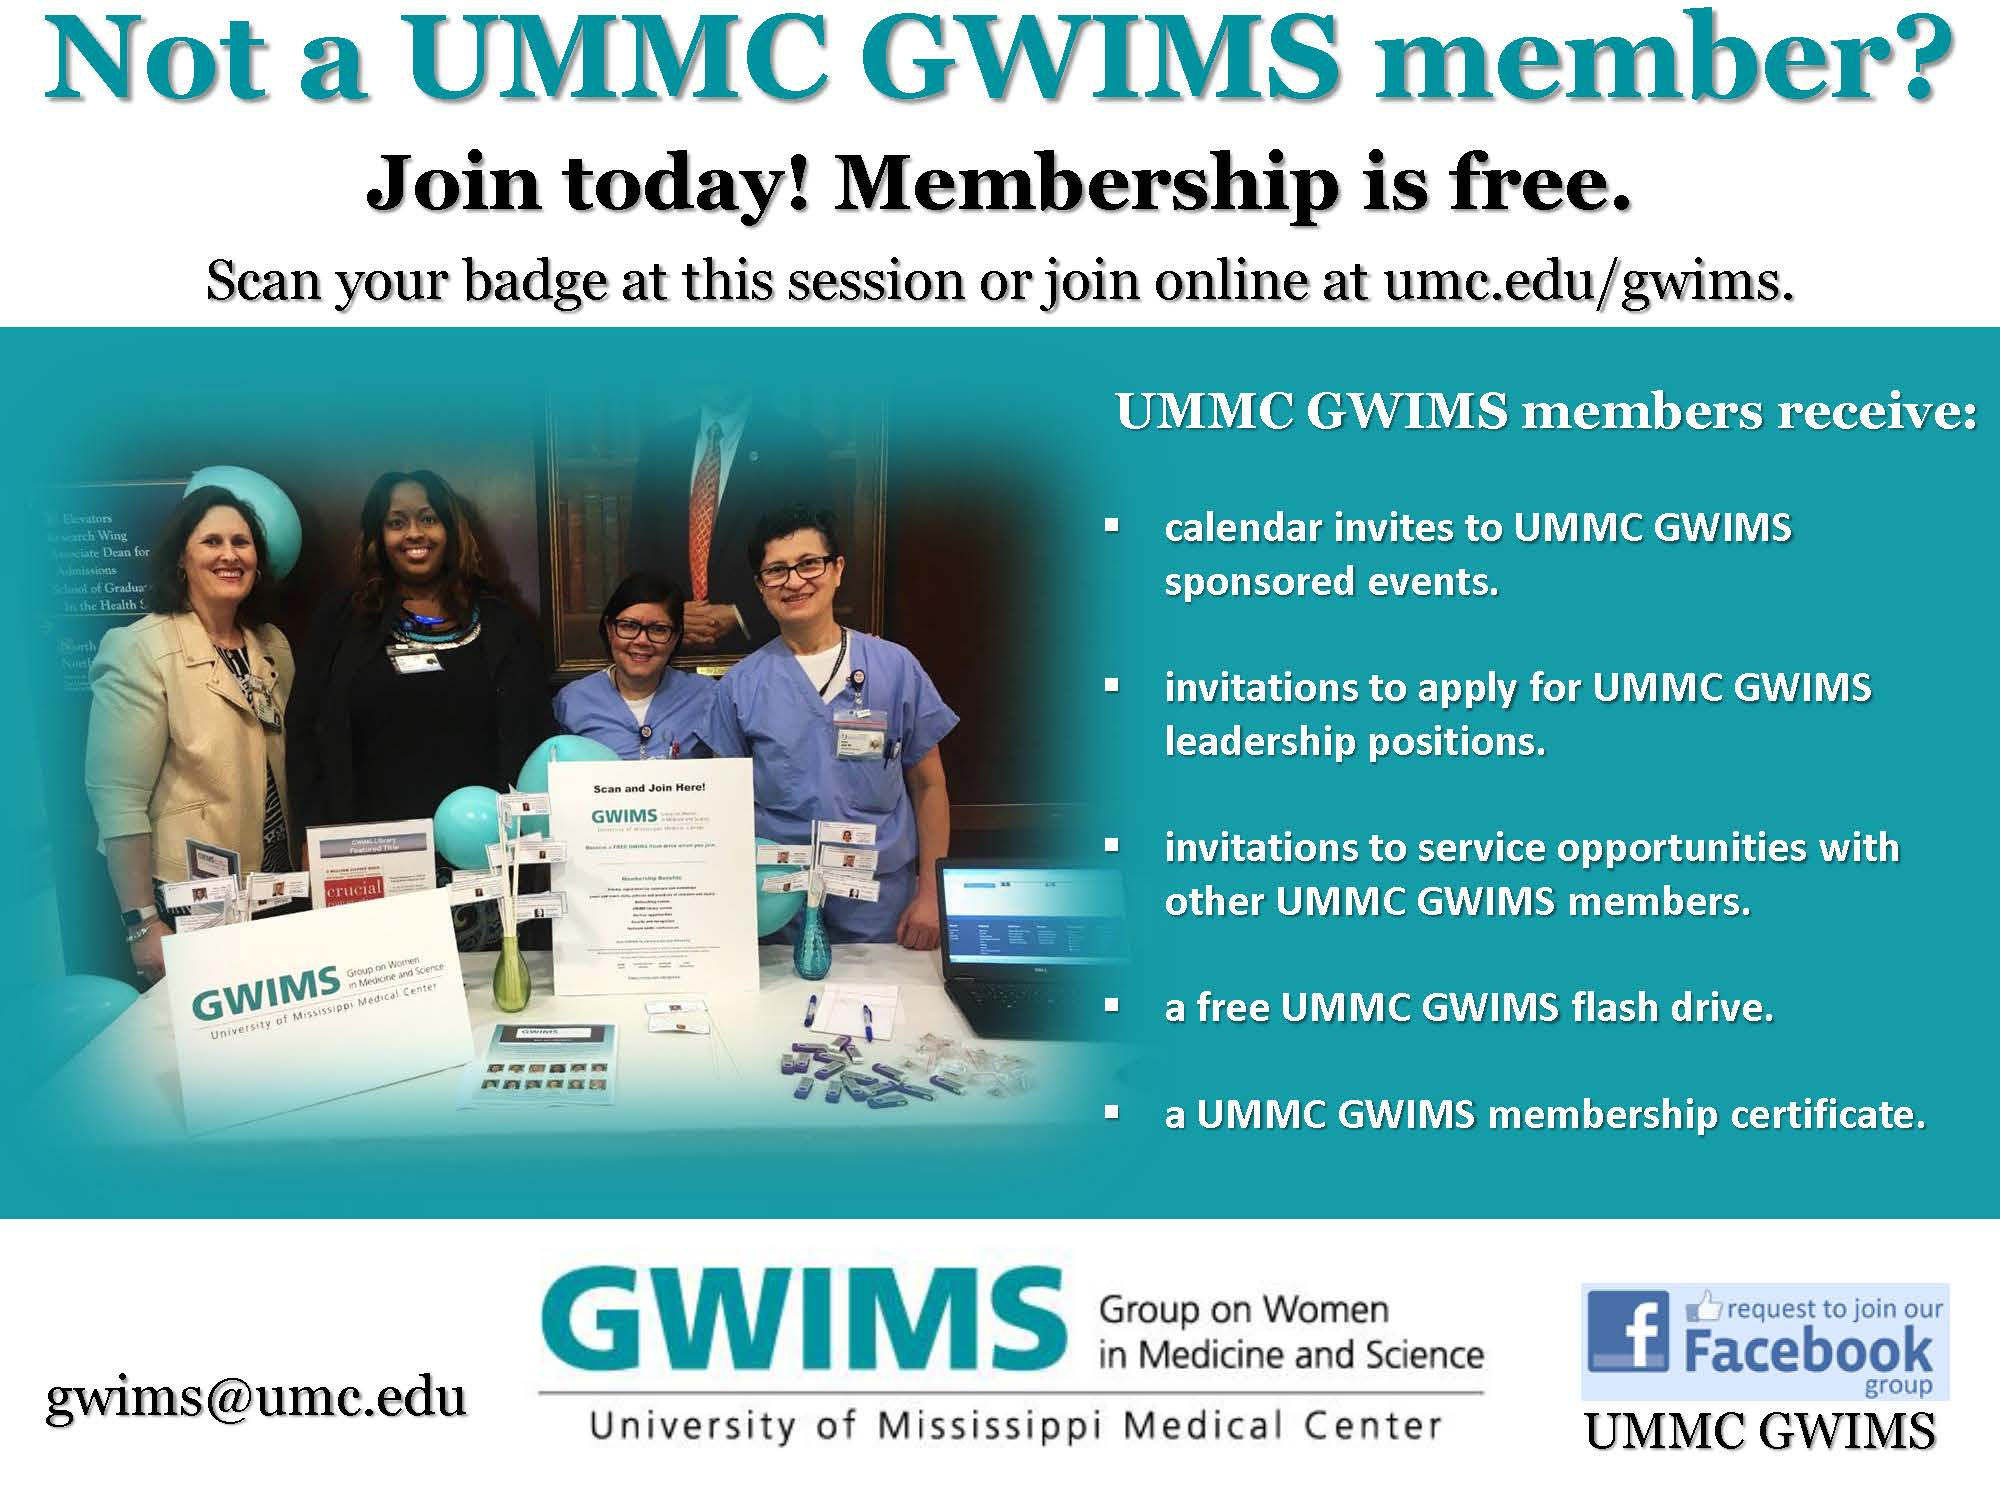 ummc-gwims-membership-intro-slide.jpg